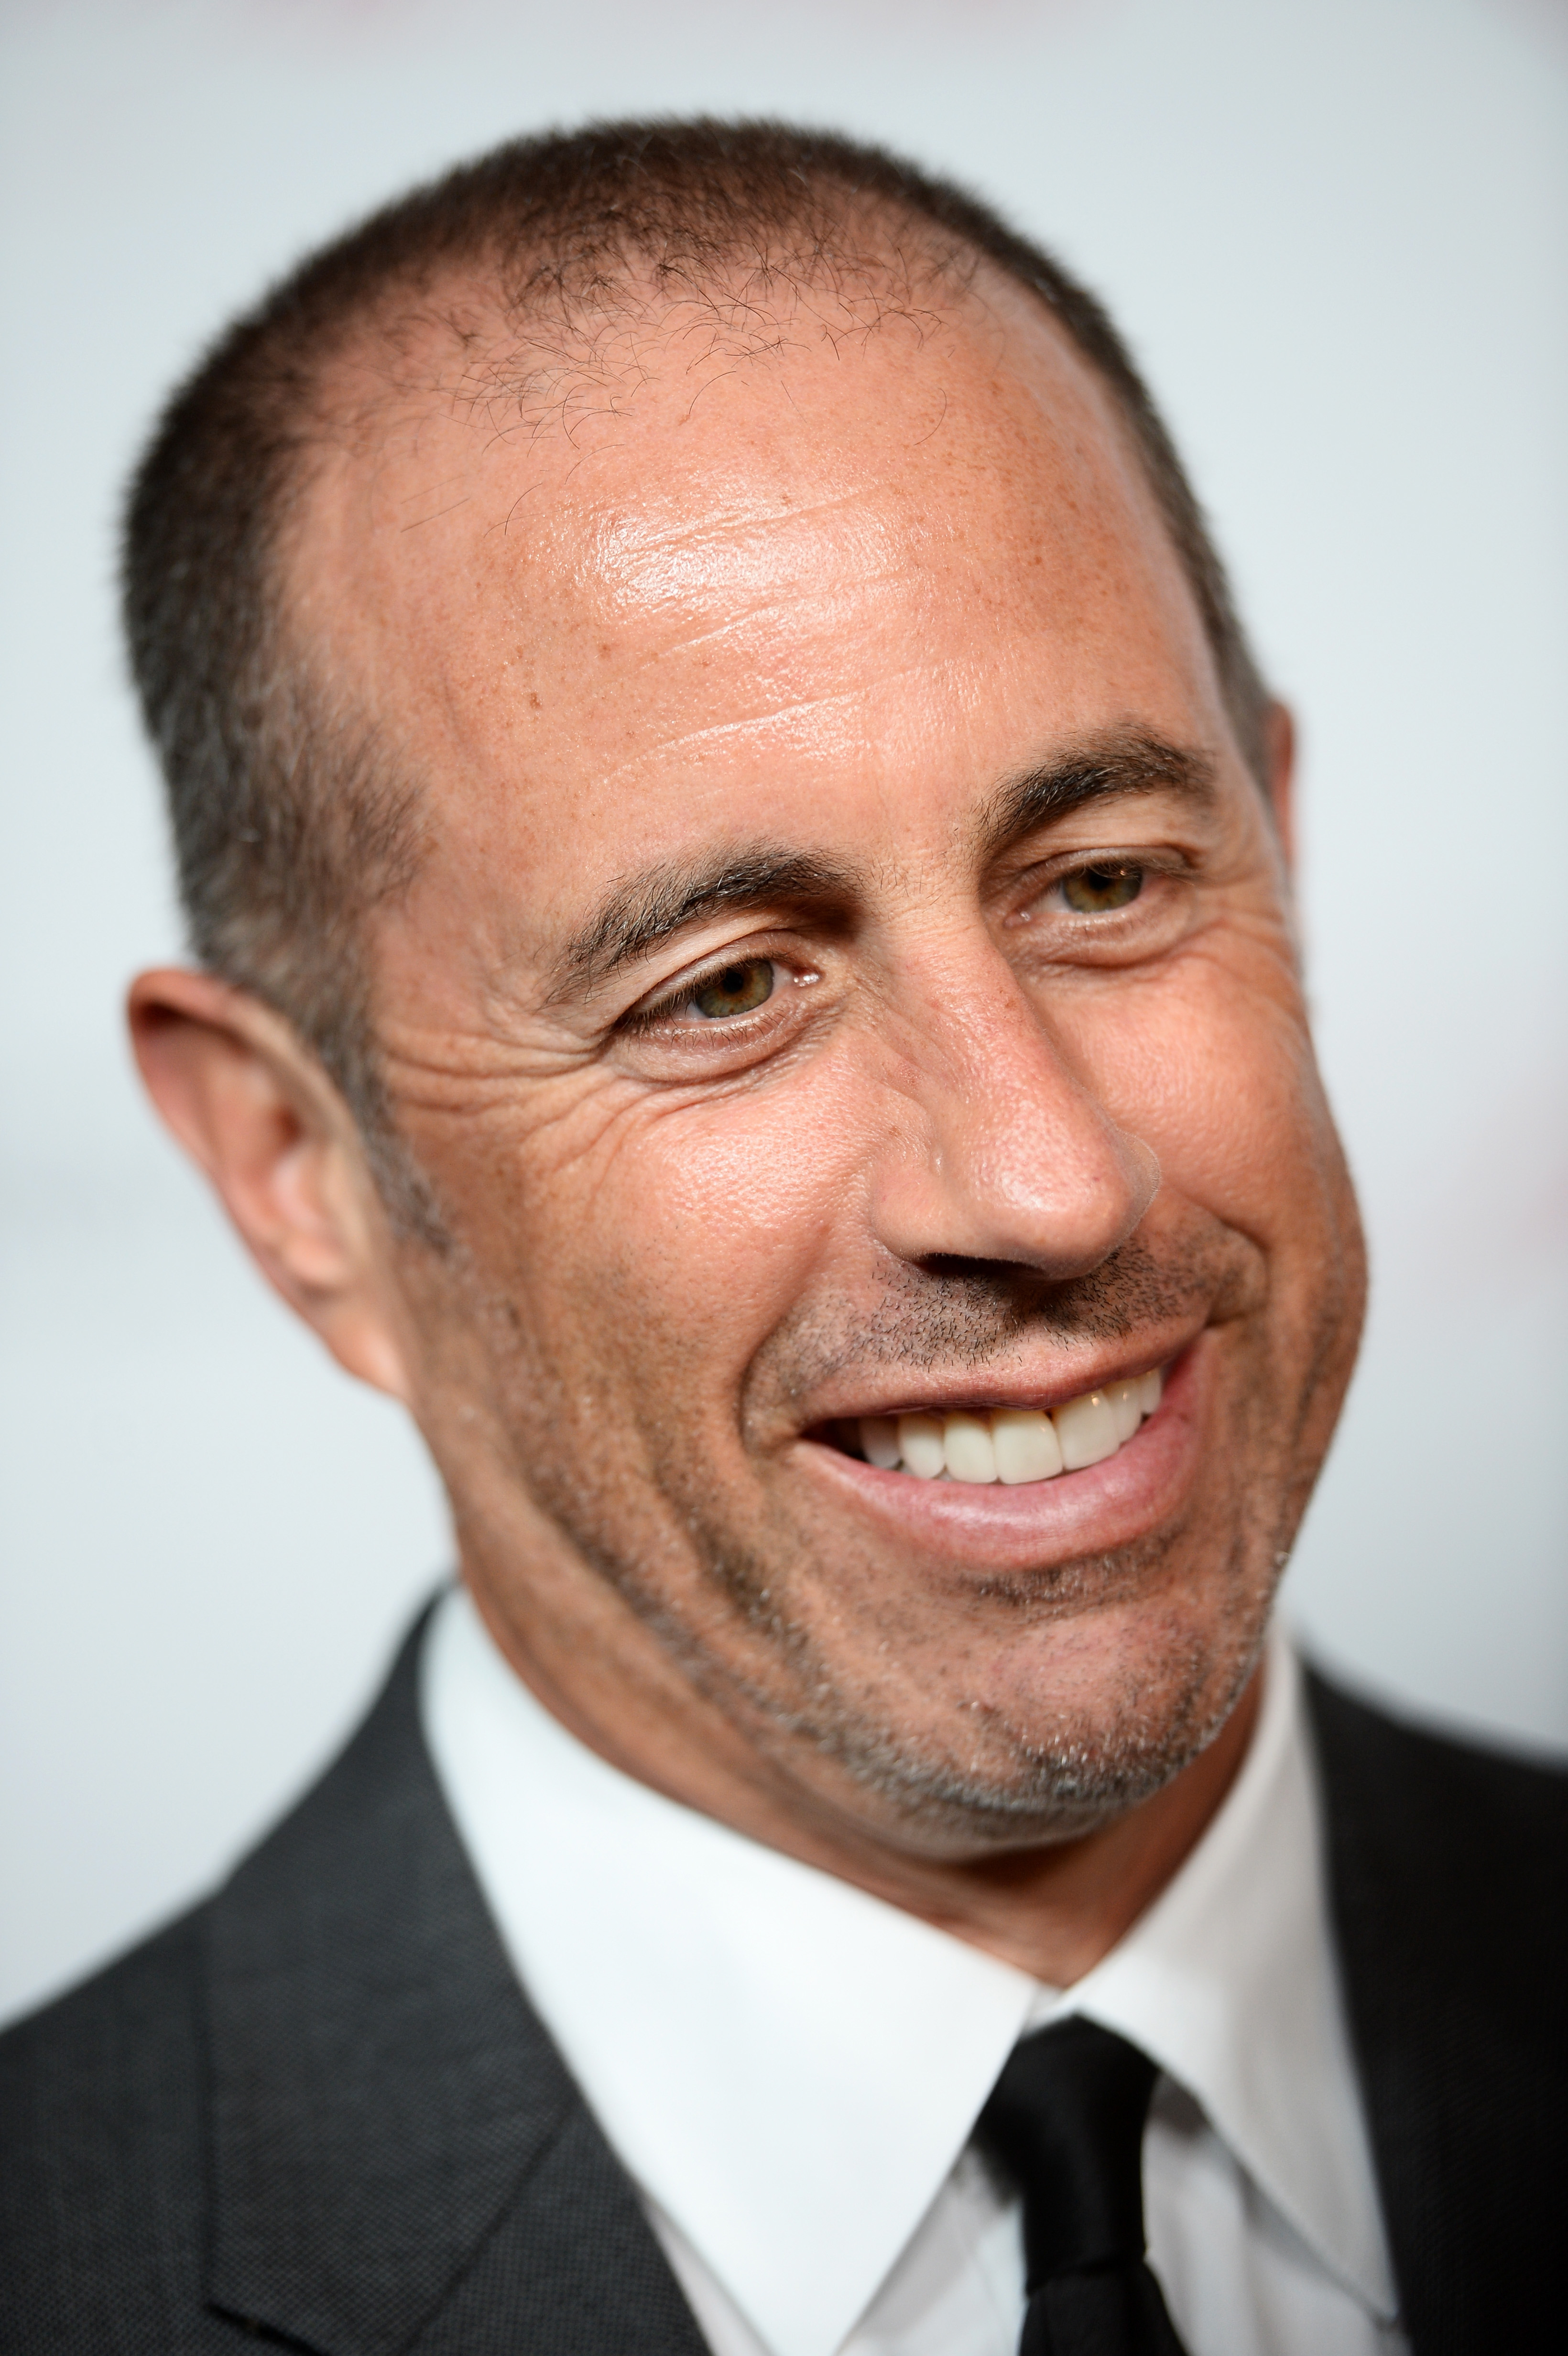 Jerry Seinfeld at the American Friends of Magen David Adom's Third Annual Red Star Ball in Beverly Hills, Calif. on Oct. 22, 2015.